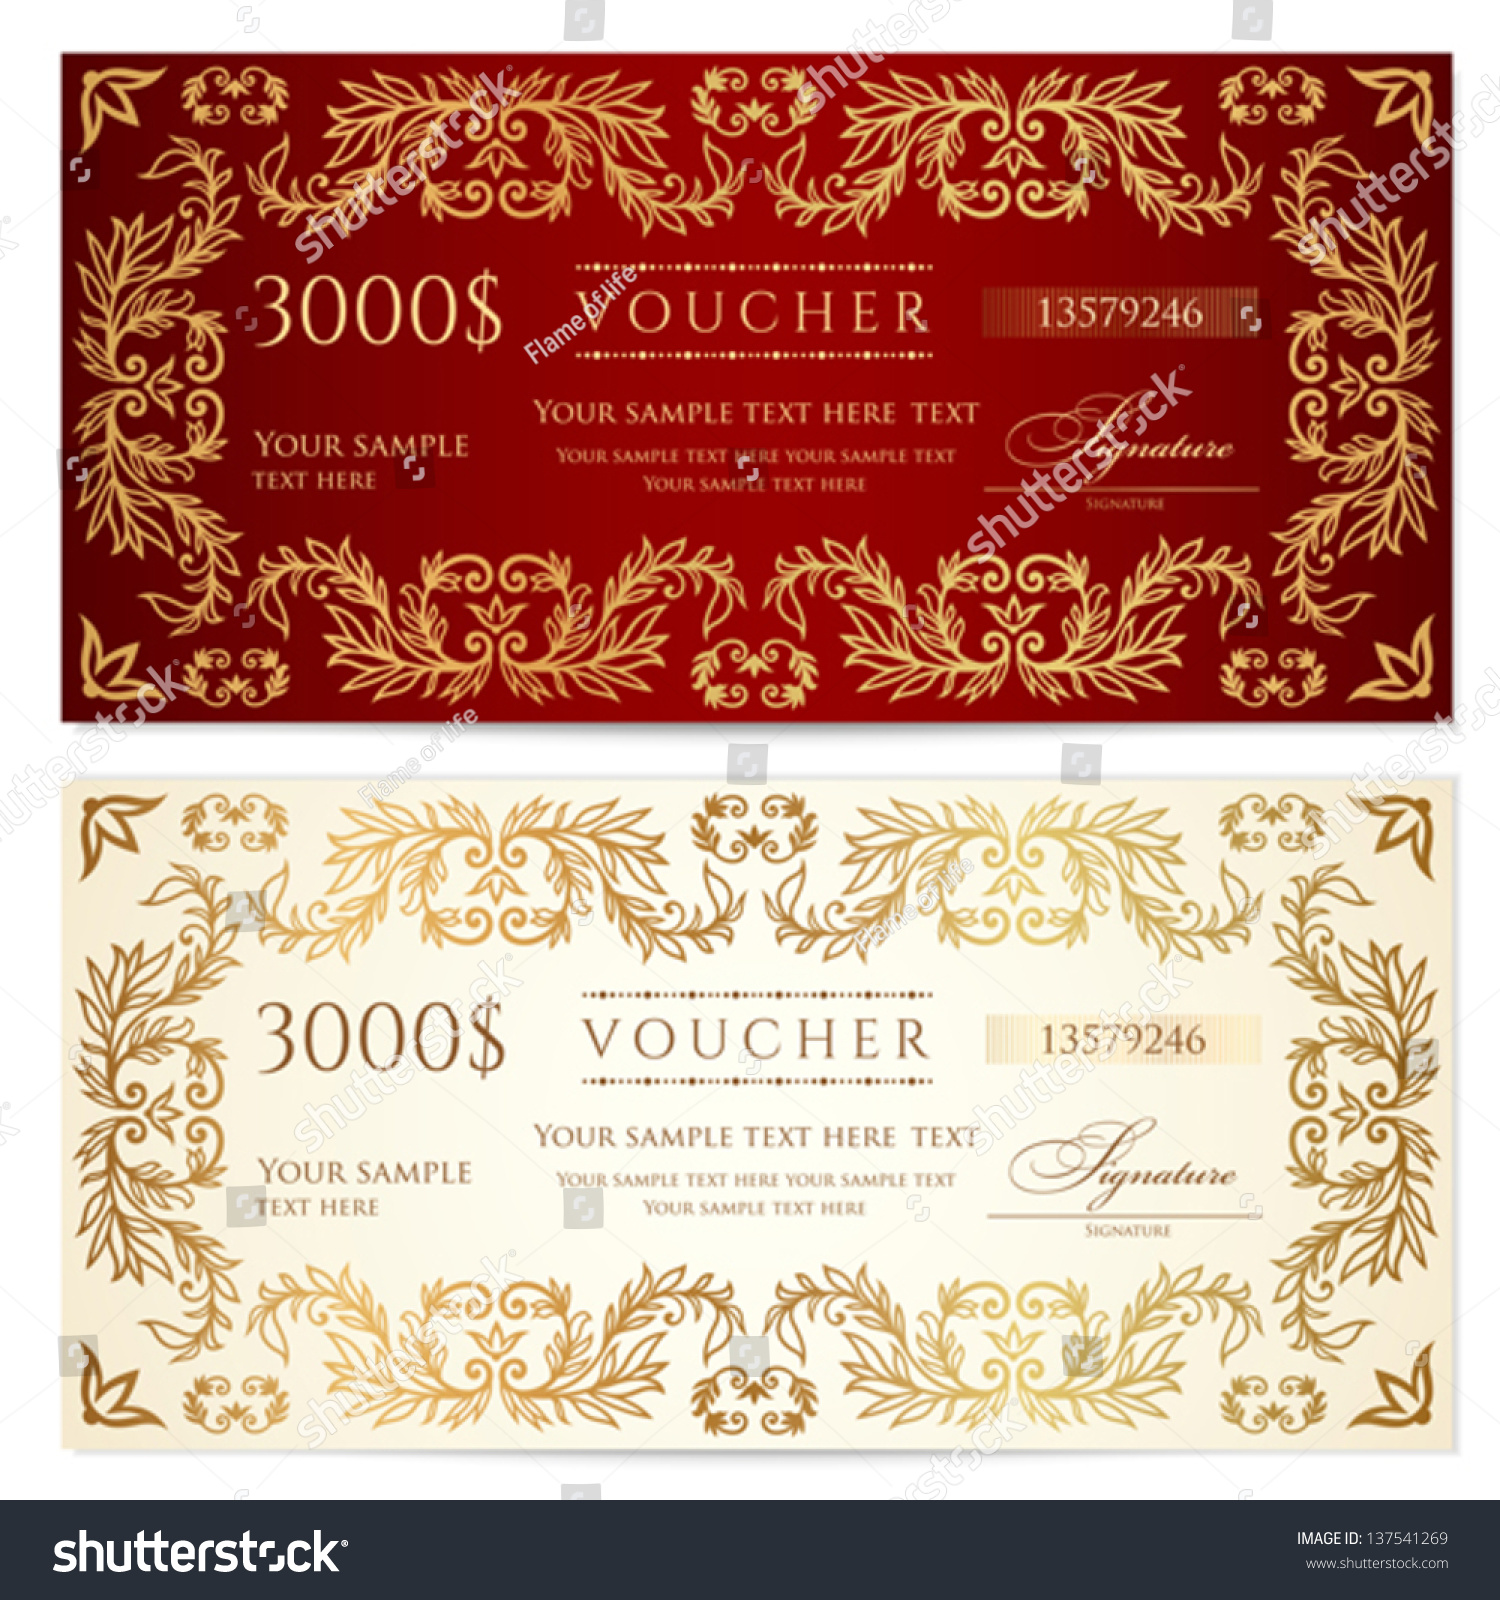 Voucher Gift Certificate Template Pattern Floral Stock Vector ...